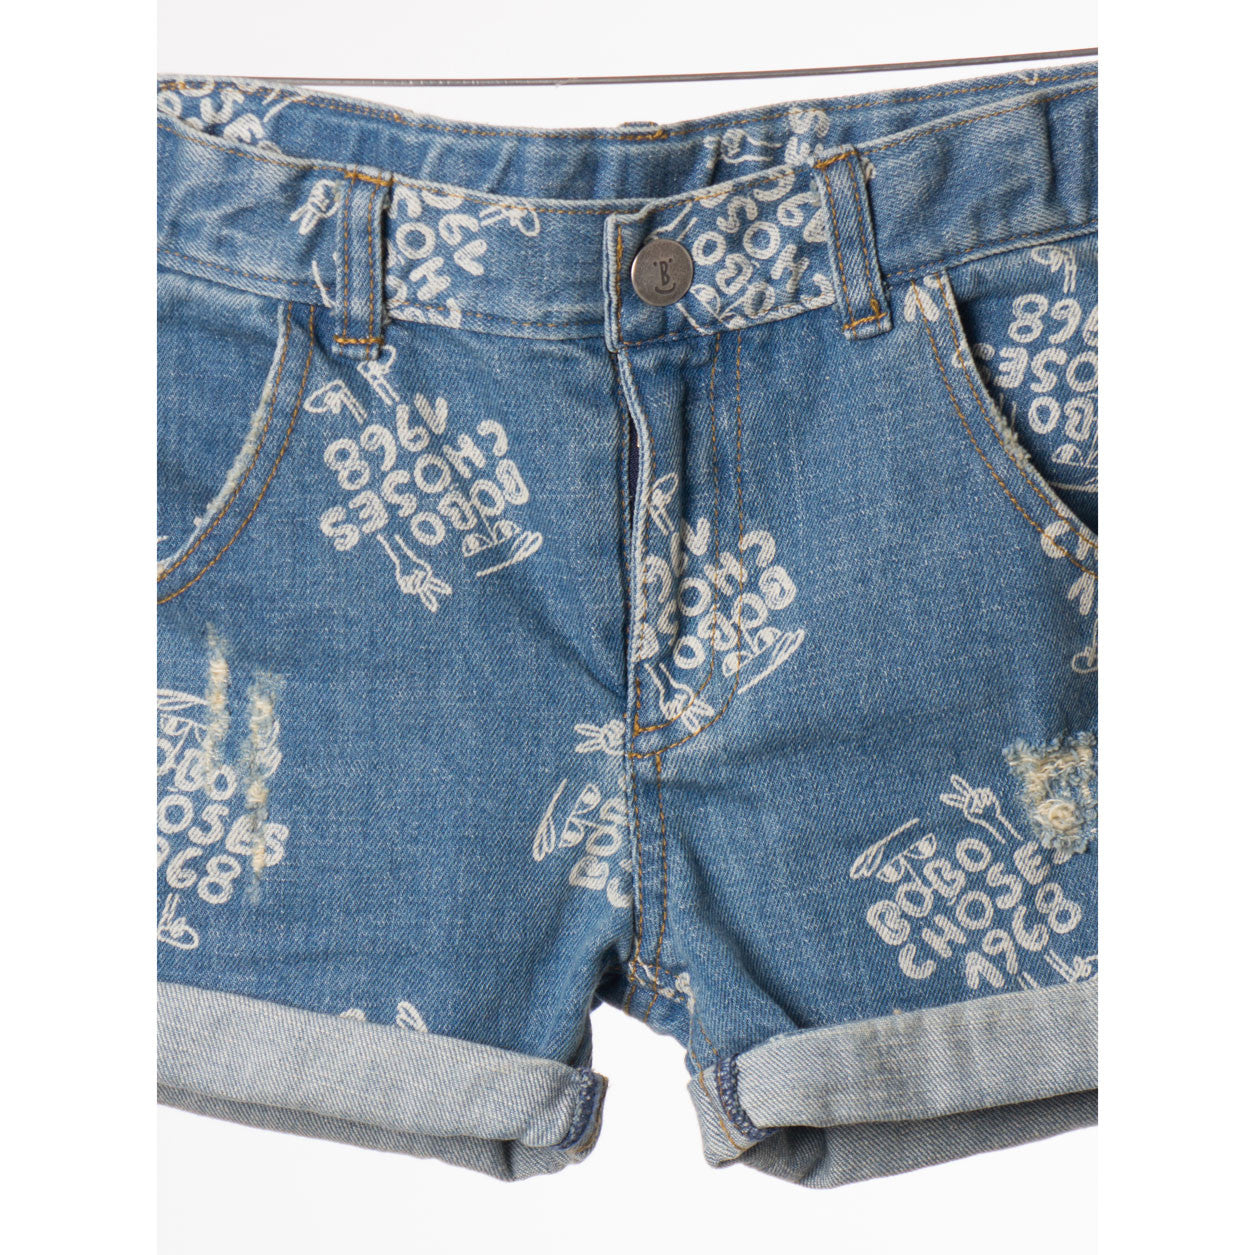 Bobo Choses 1968 AO Denim Short